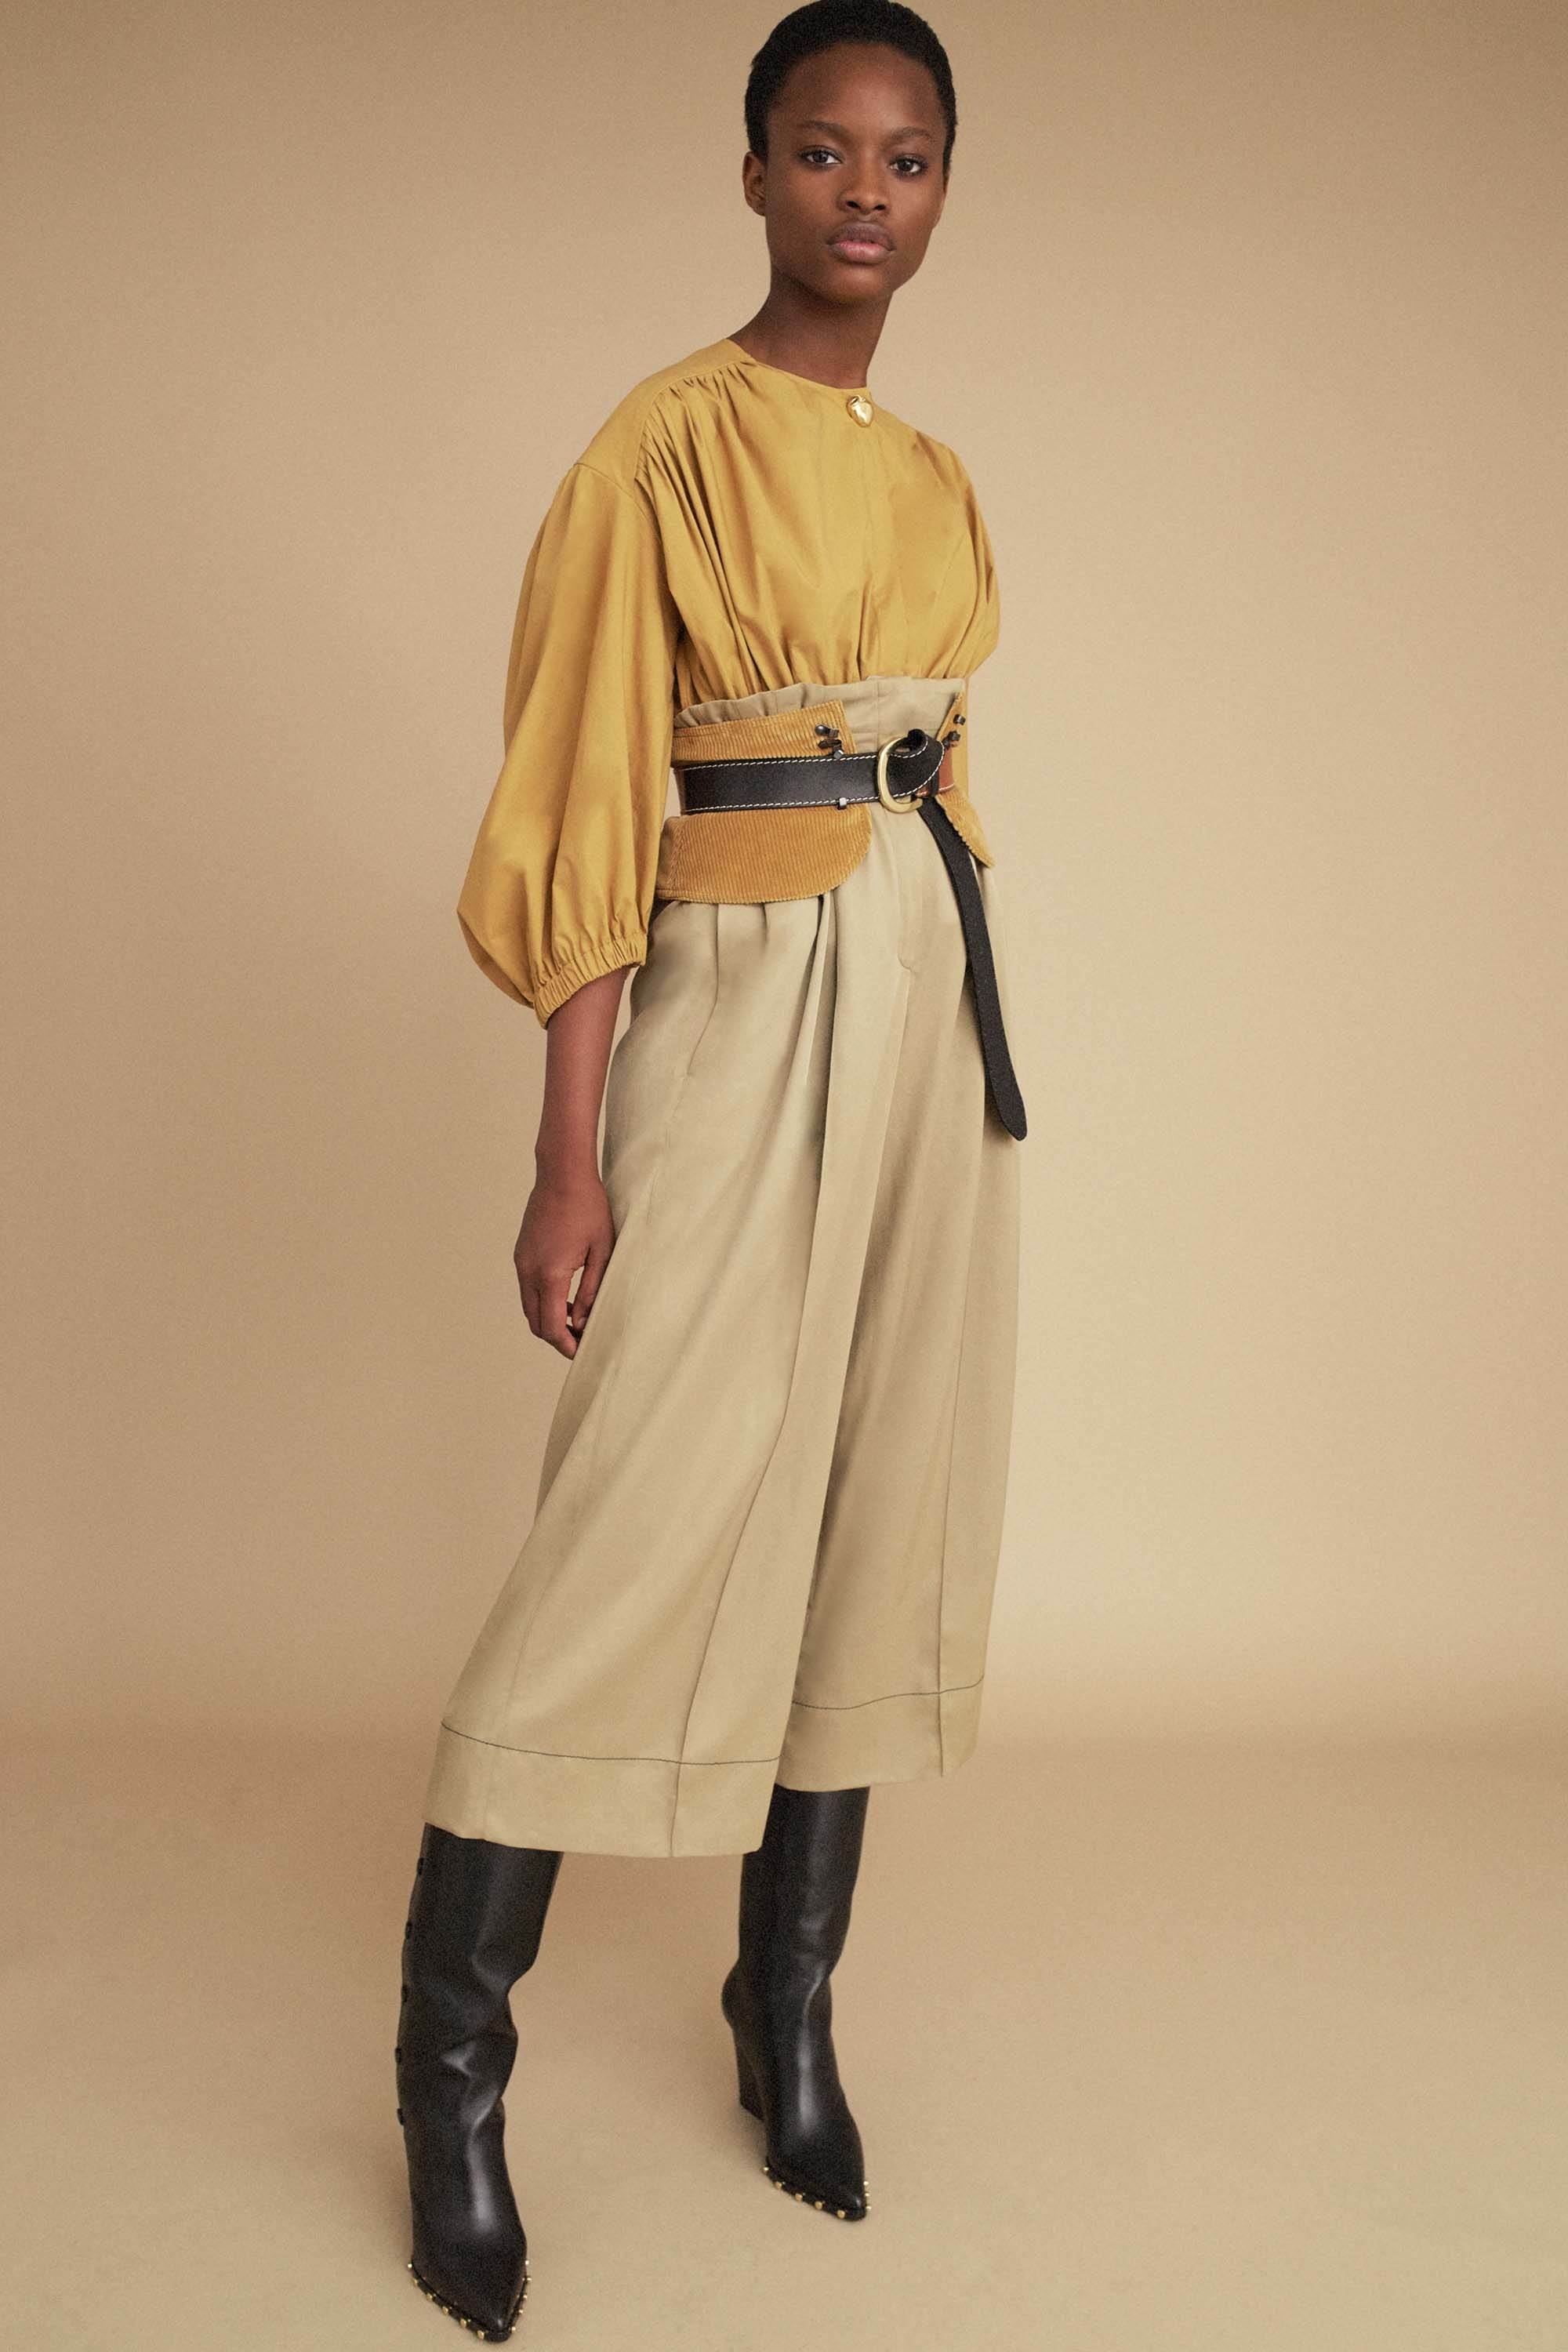 13-sonia-rykiel-resort-17